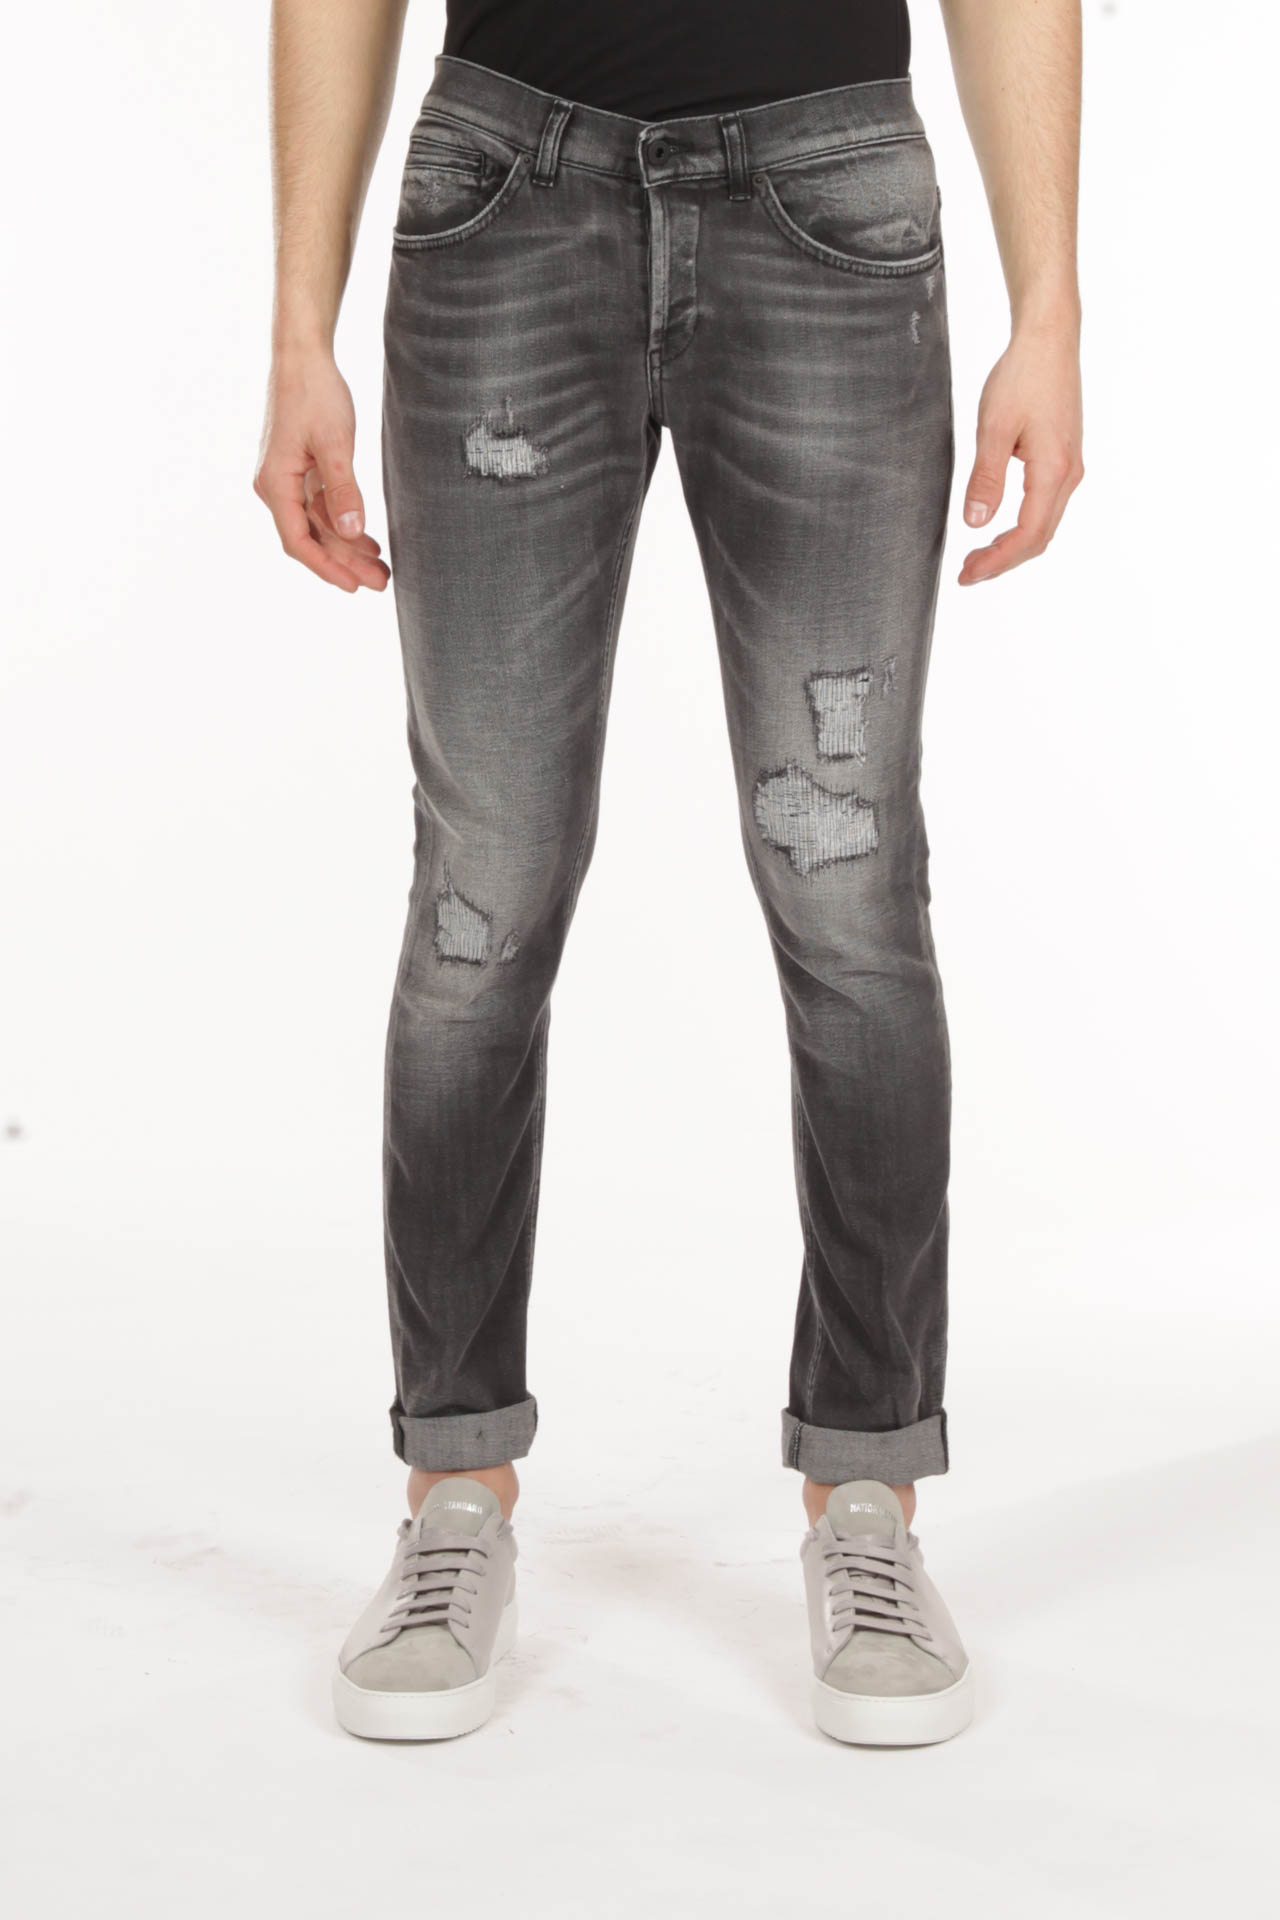 Jeans george DONDUP | Jeans | UP232 DS0272UBC6 DU 999